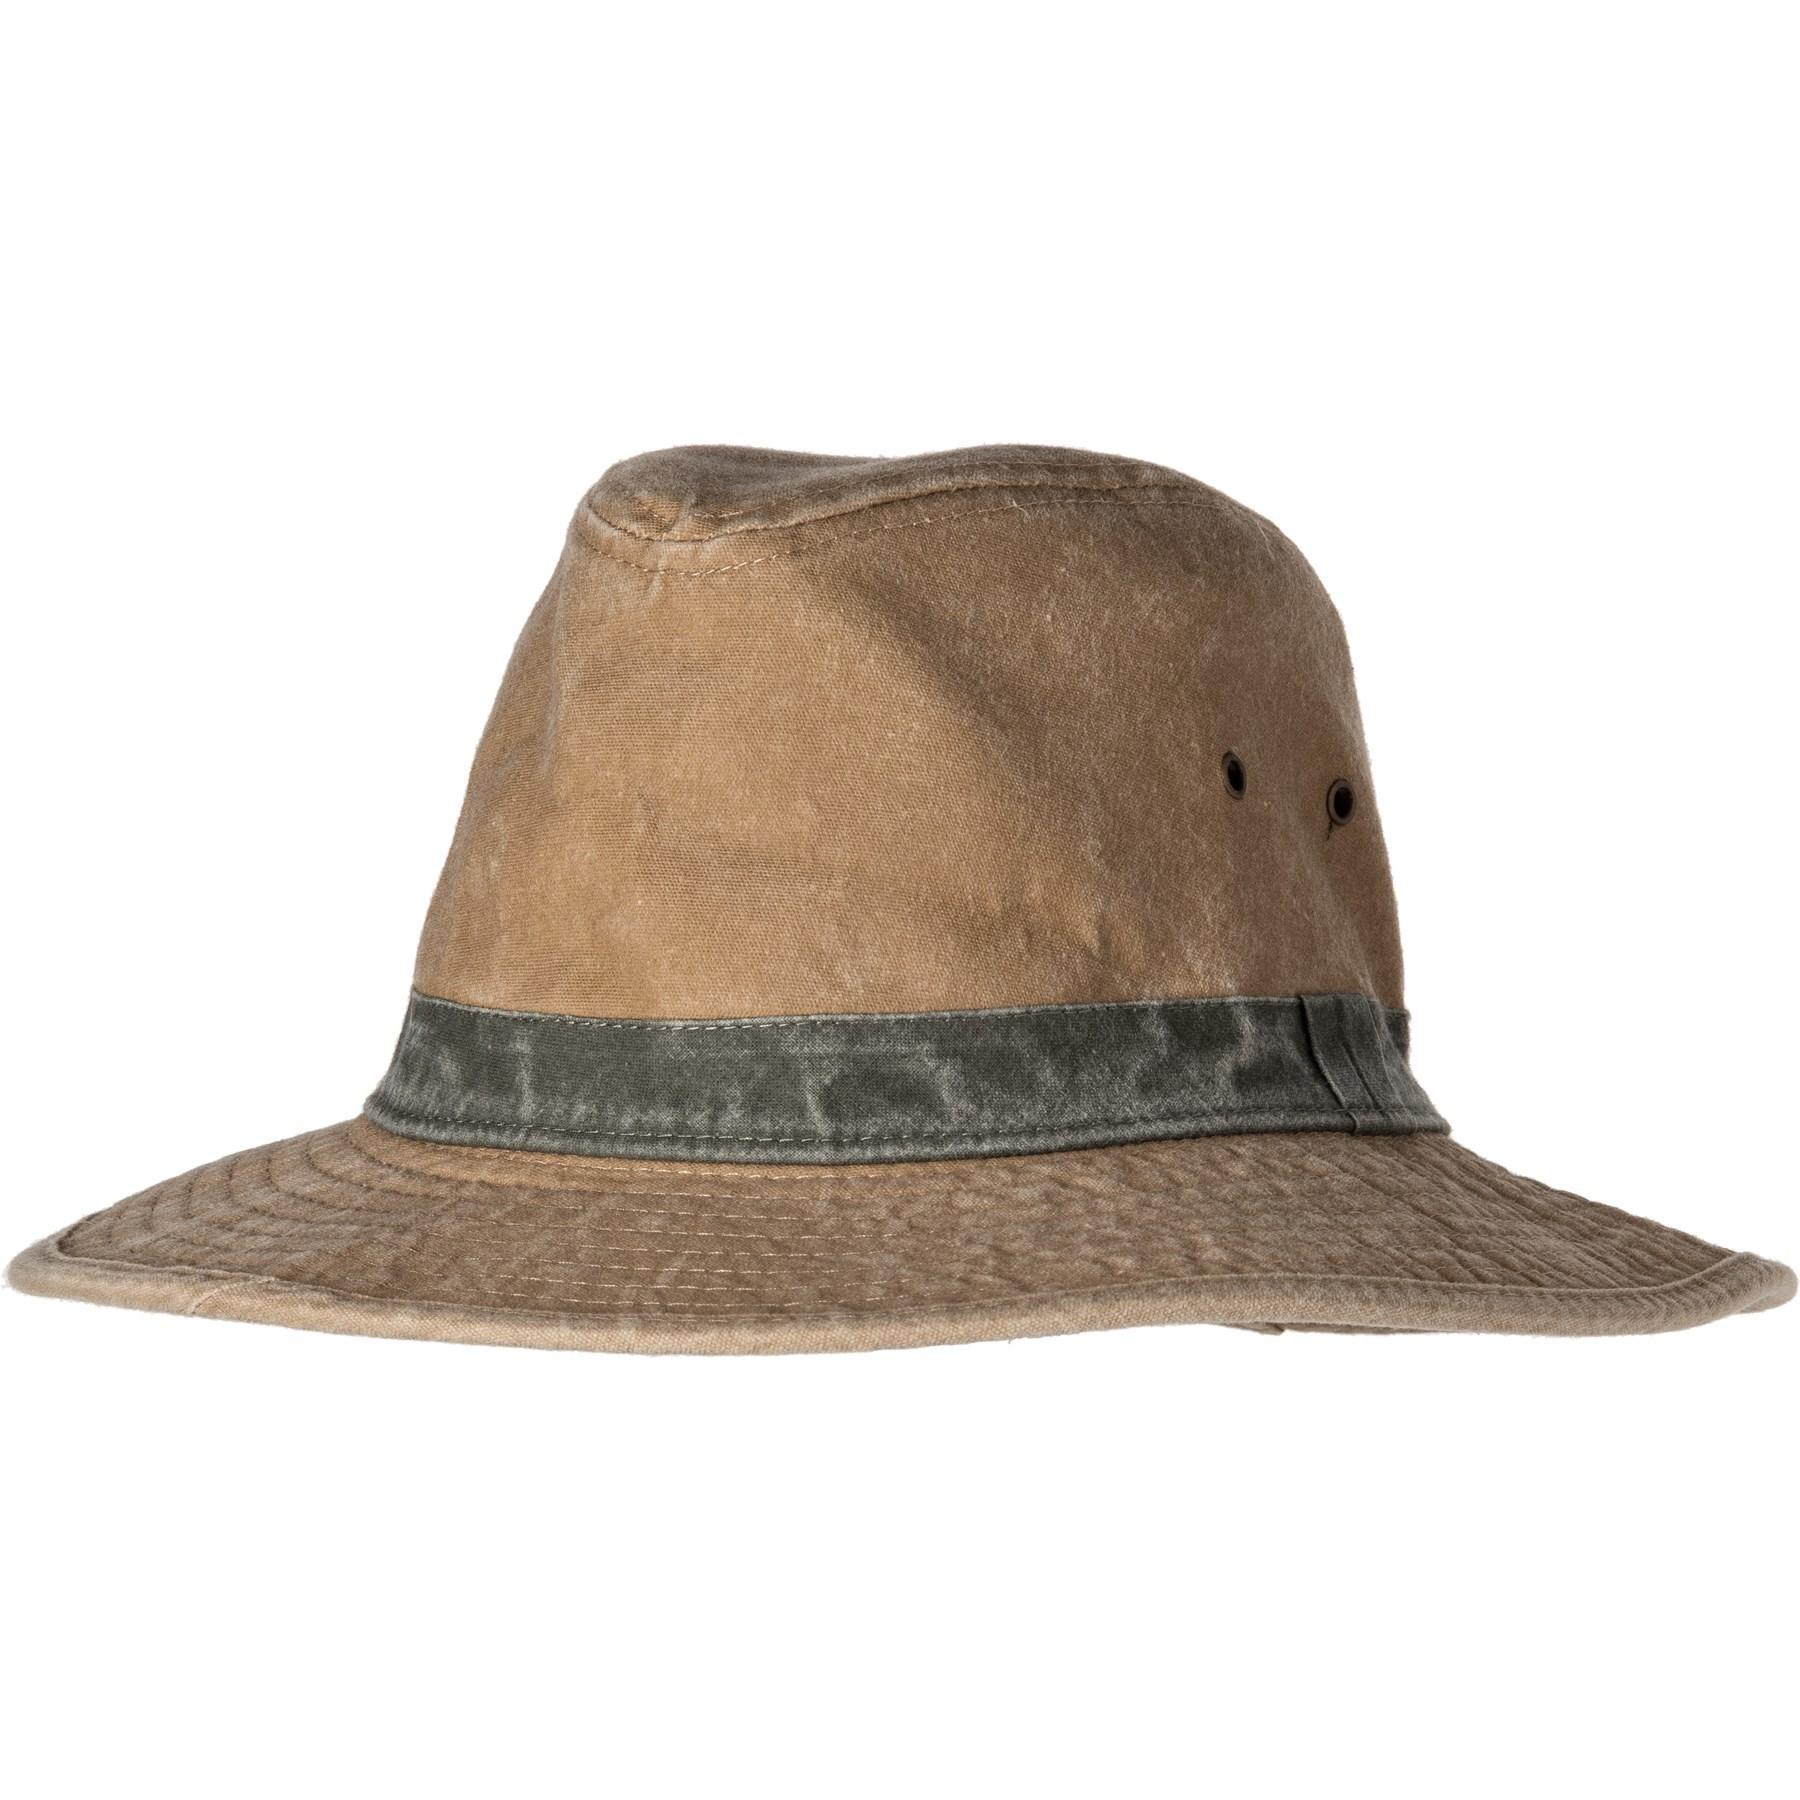 4c1554d2 Lyst - Dorfman Pacific Washed Cotton Ds Safari Hat in Natural for Men